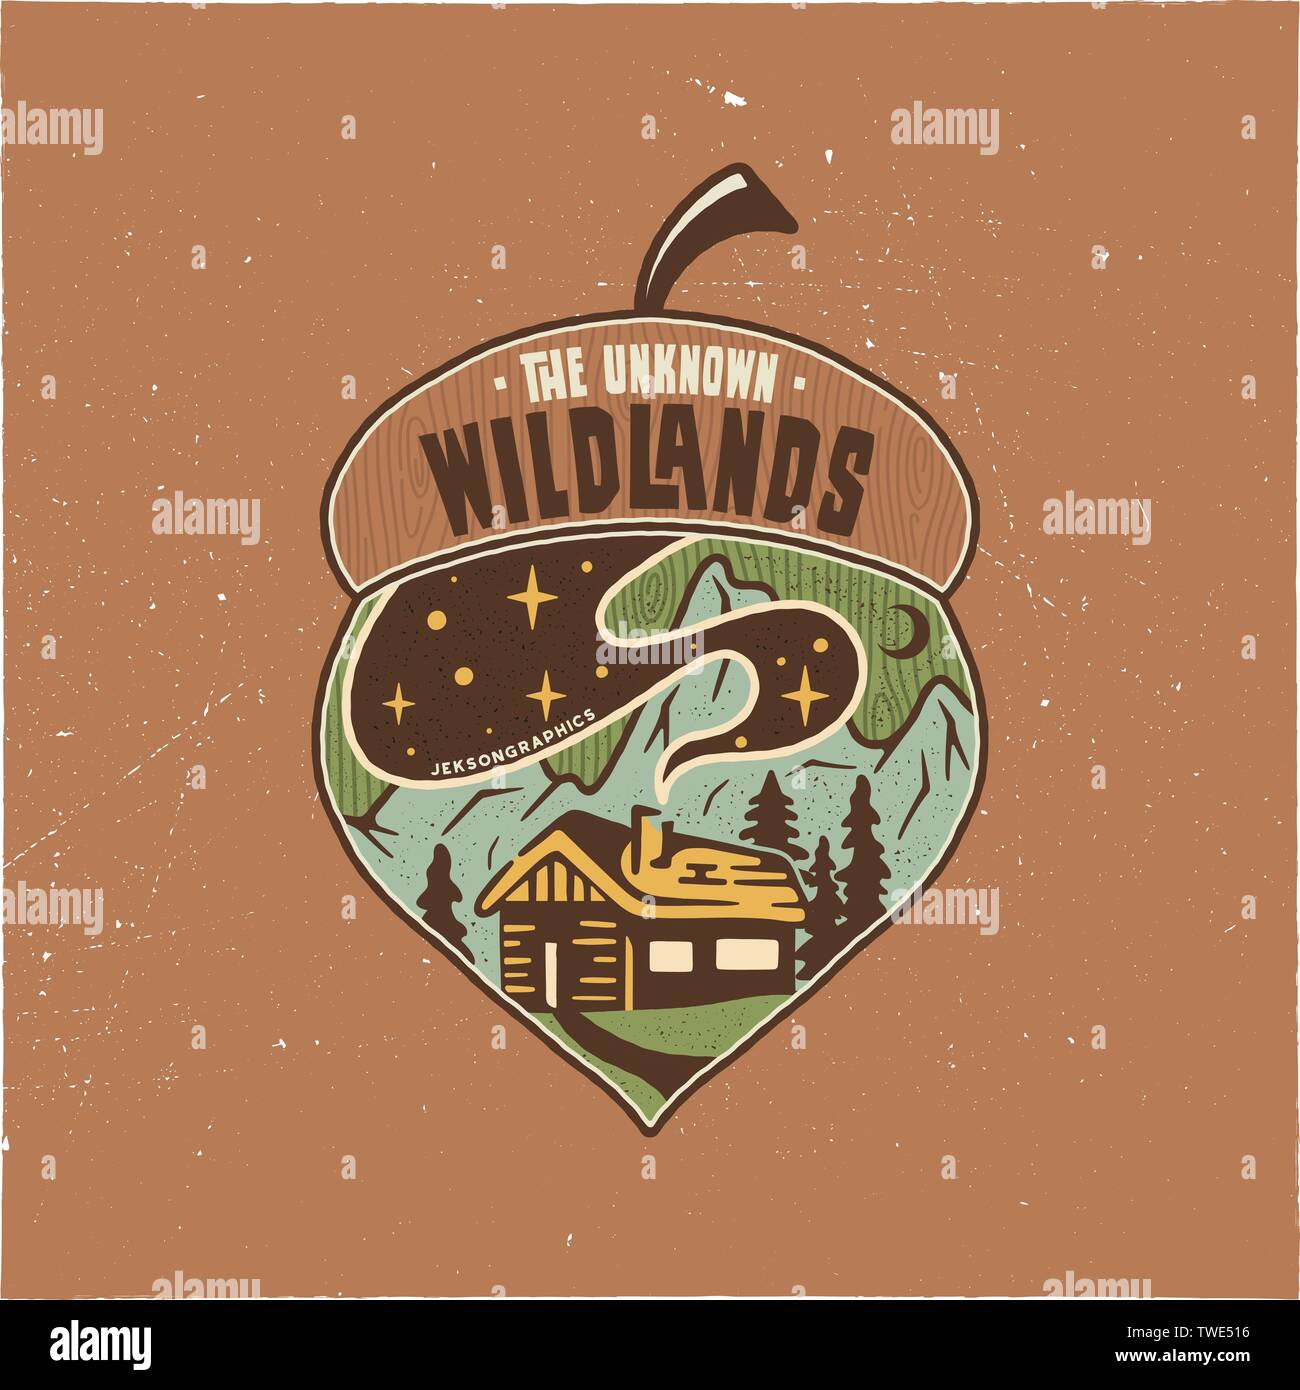 Vintage Camping badge acorn illustration design. Outdoor logo with quote - The unknown wildlands, for t shirt. Included retro mountains, woods house - Stock Vector